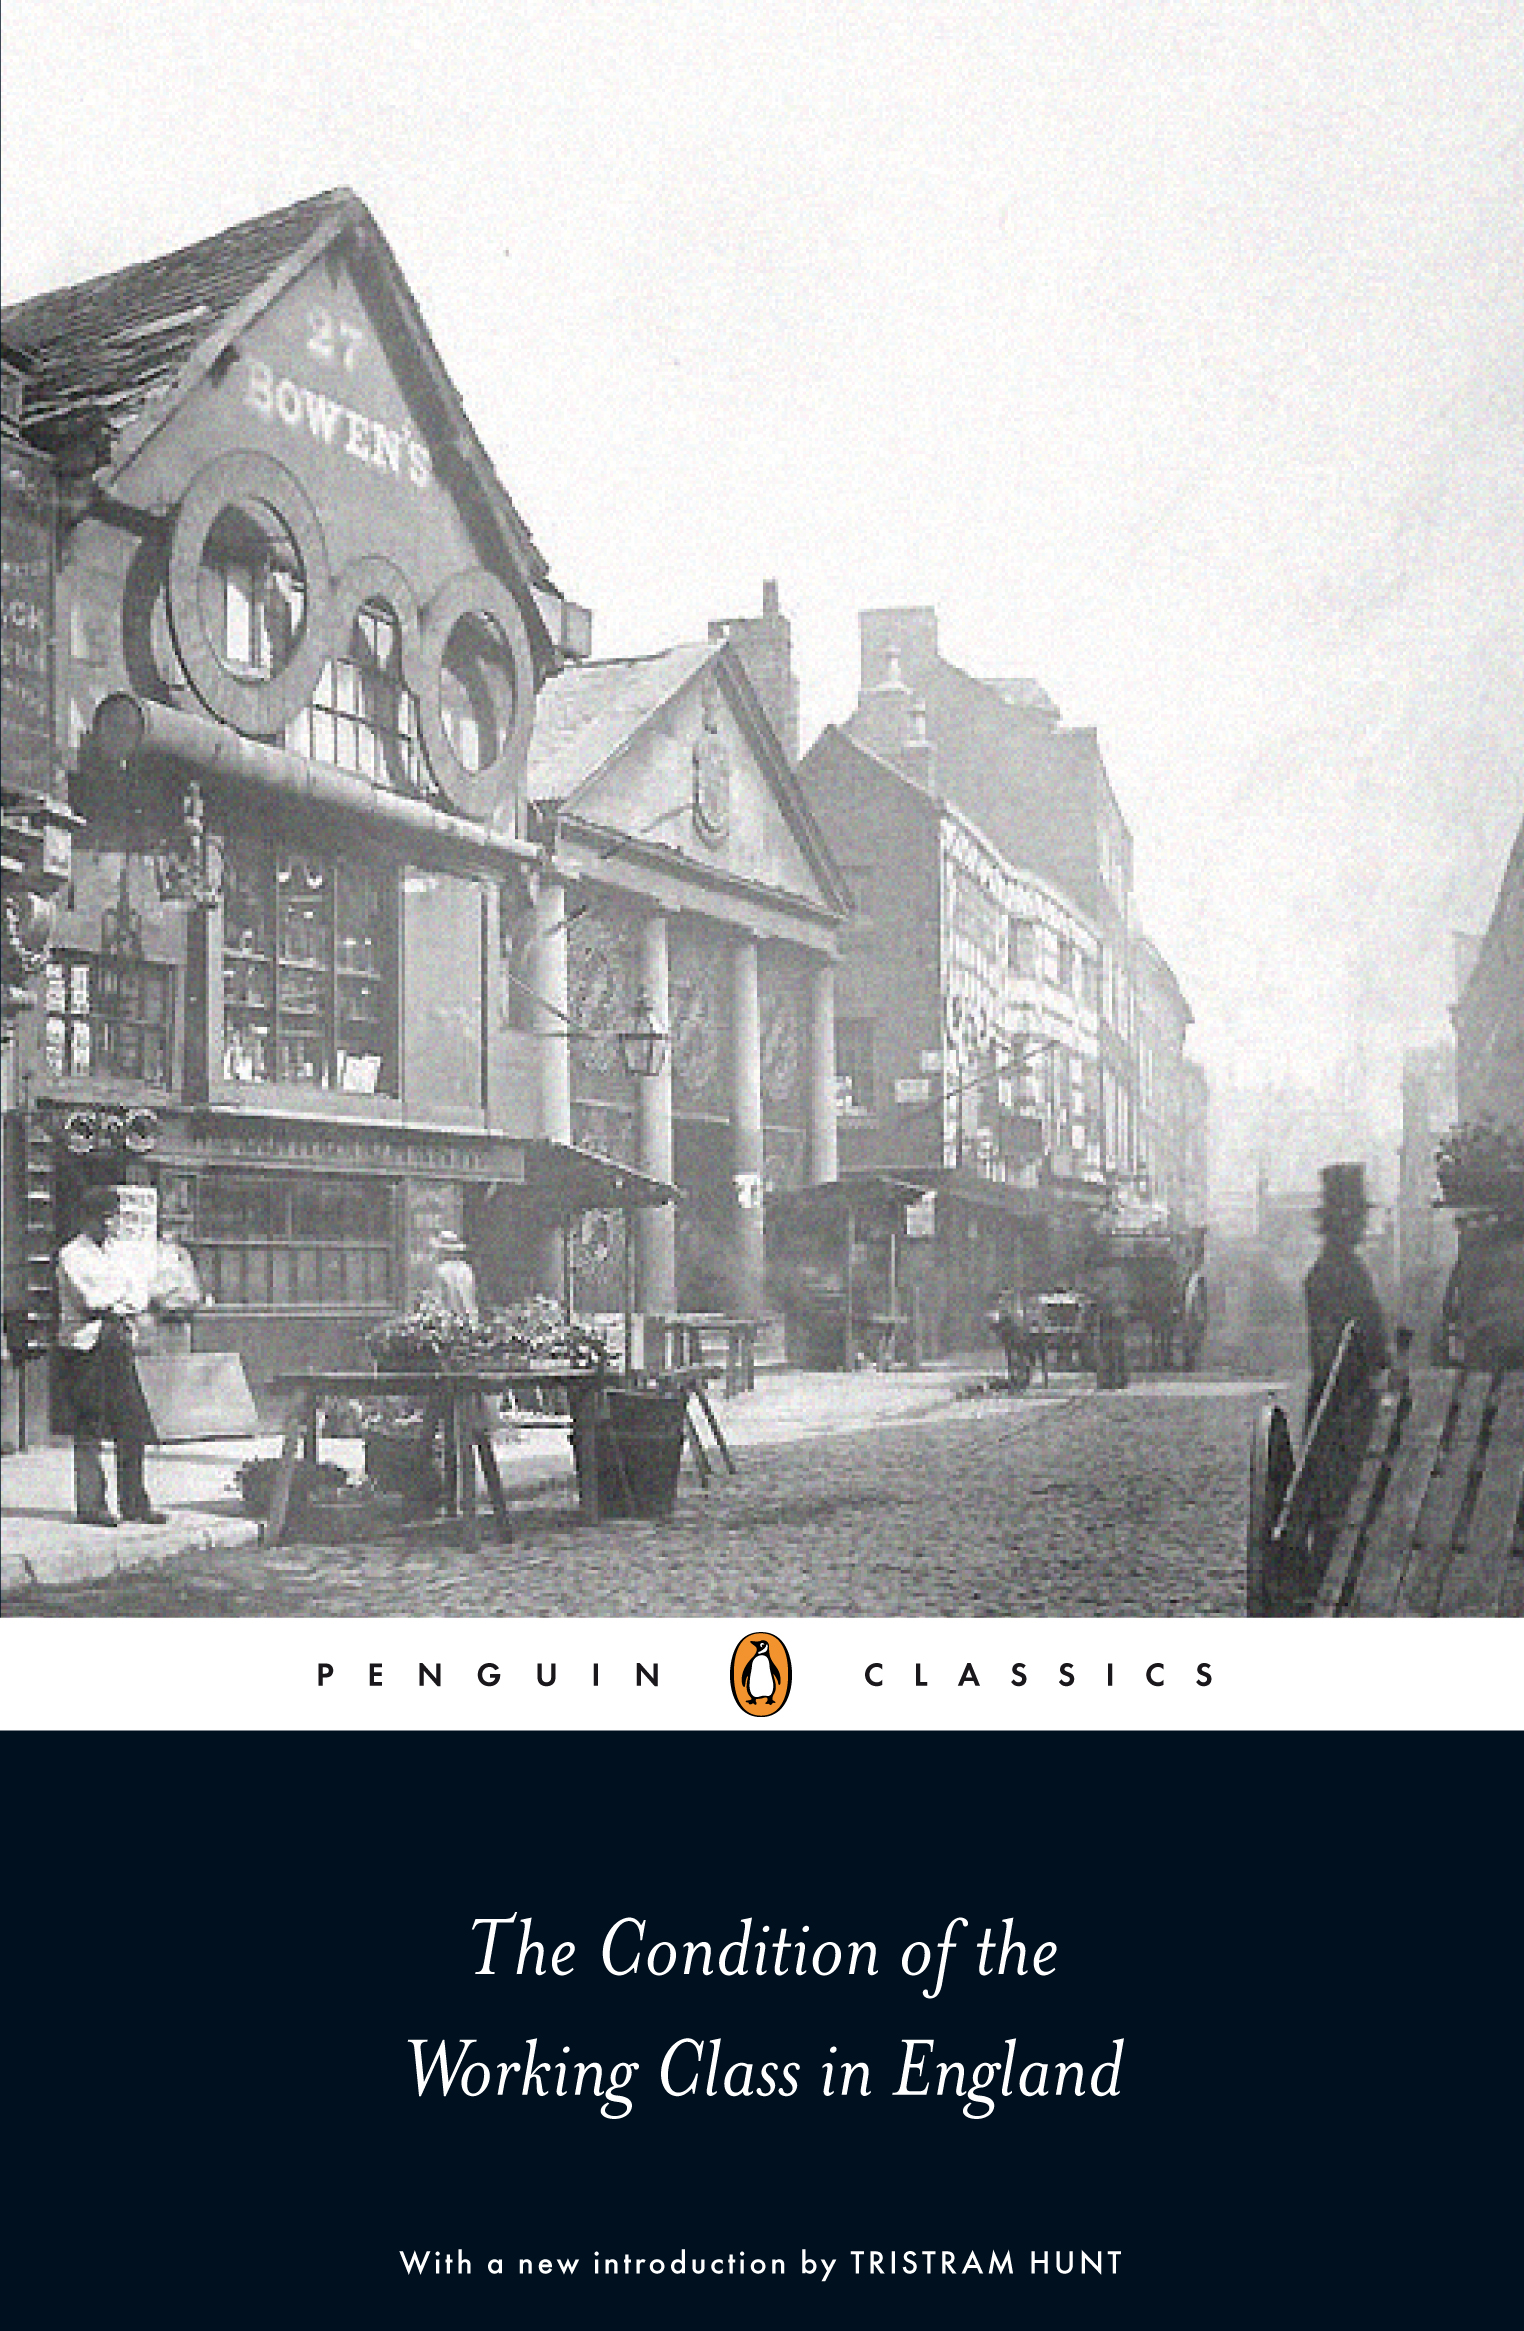 the condition of the working class in england analysis Editions for the condition of the working class in england: 0140444866 (paperback published in 1987), 0199555885 (paperback published in 2009), (kindle e.